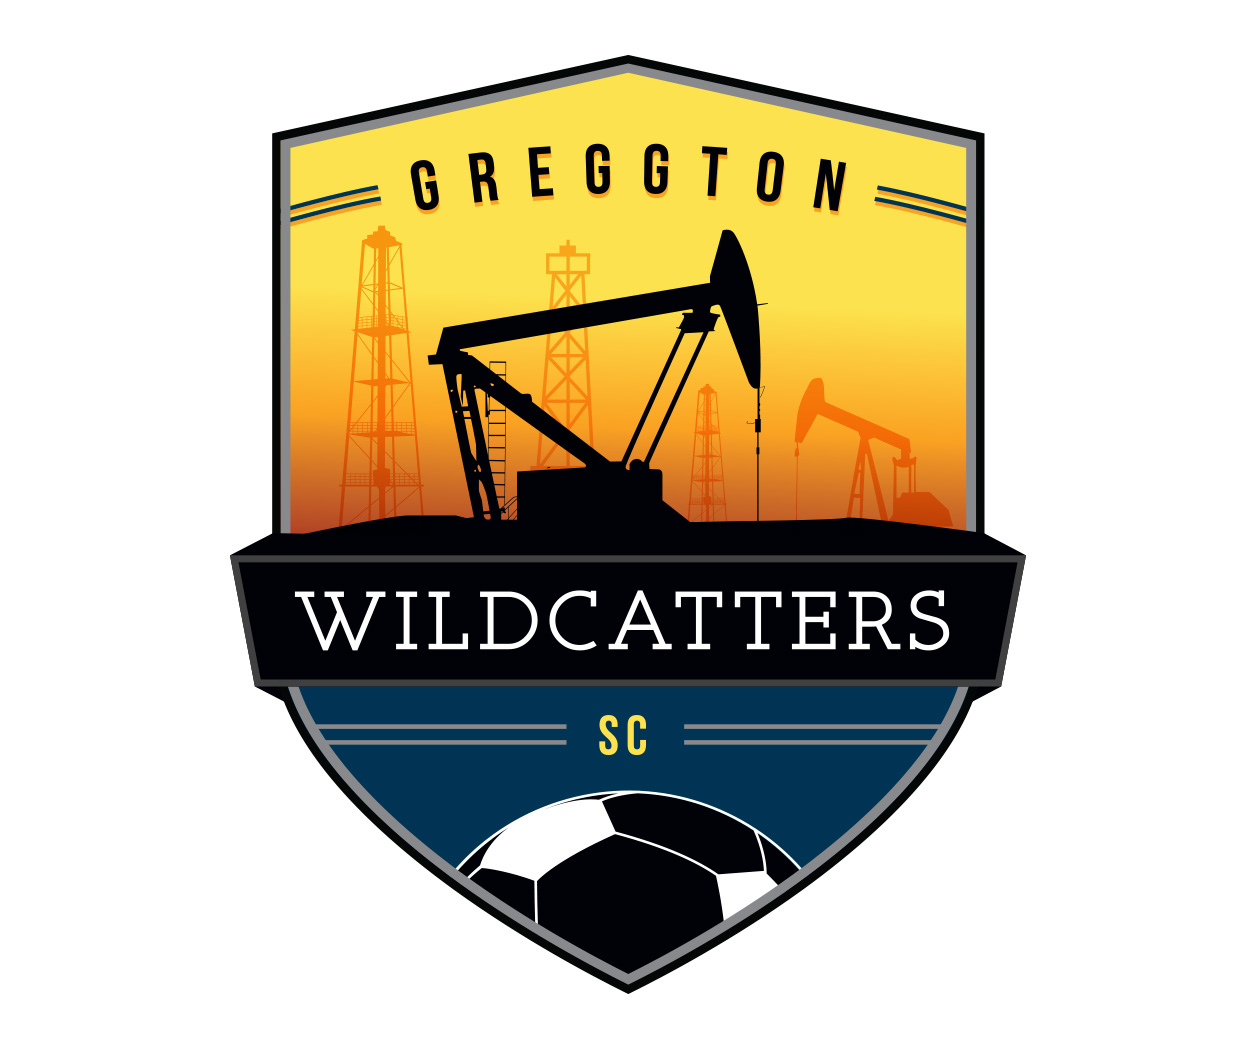 custom soccer logo design for greggton wildcatters soccer by jordan fretz design